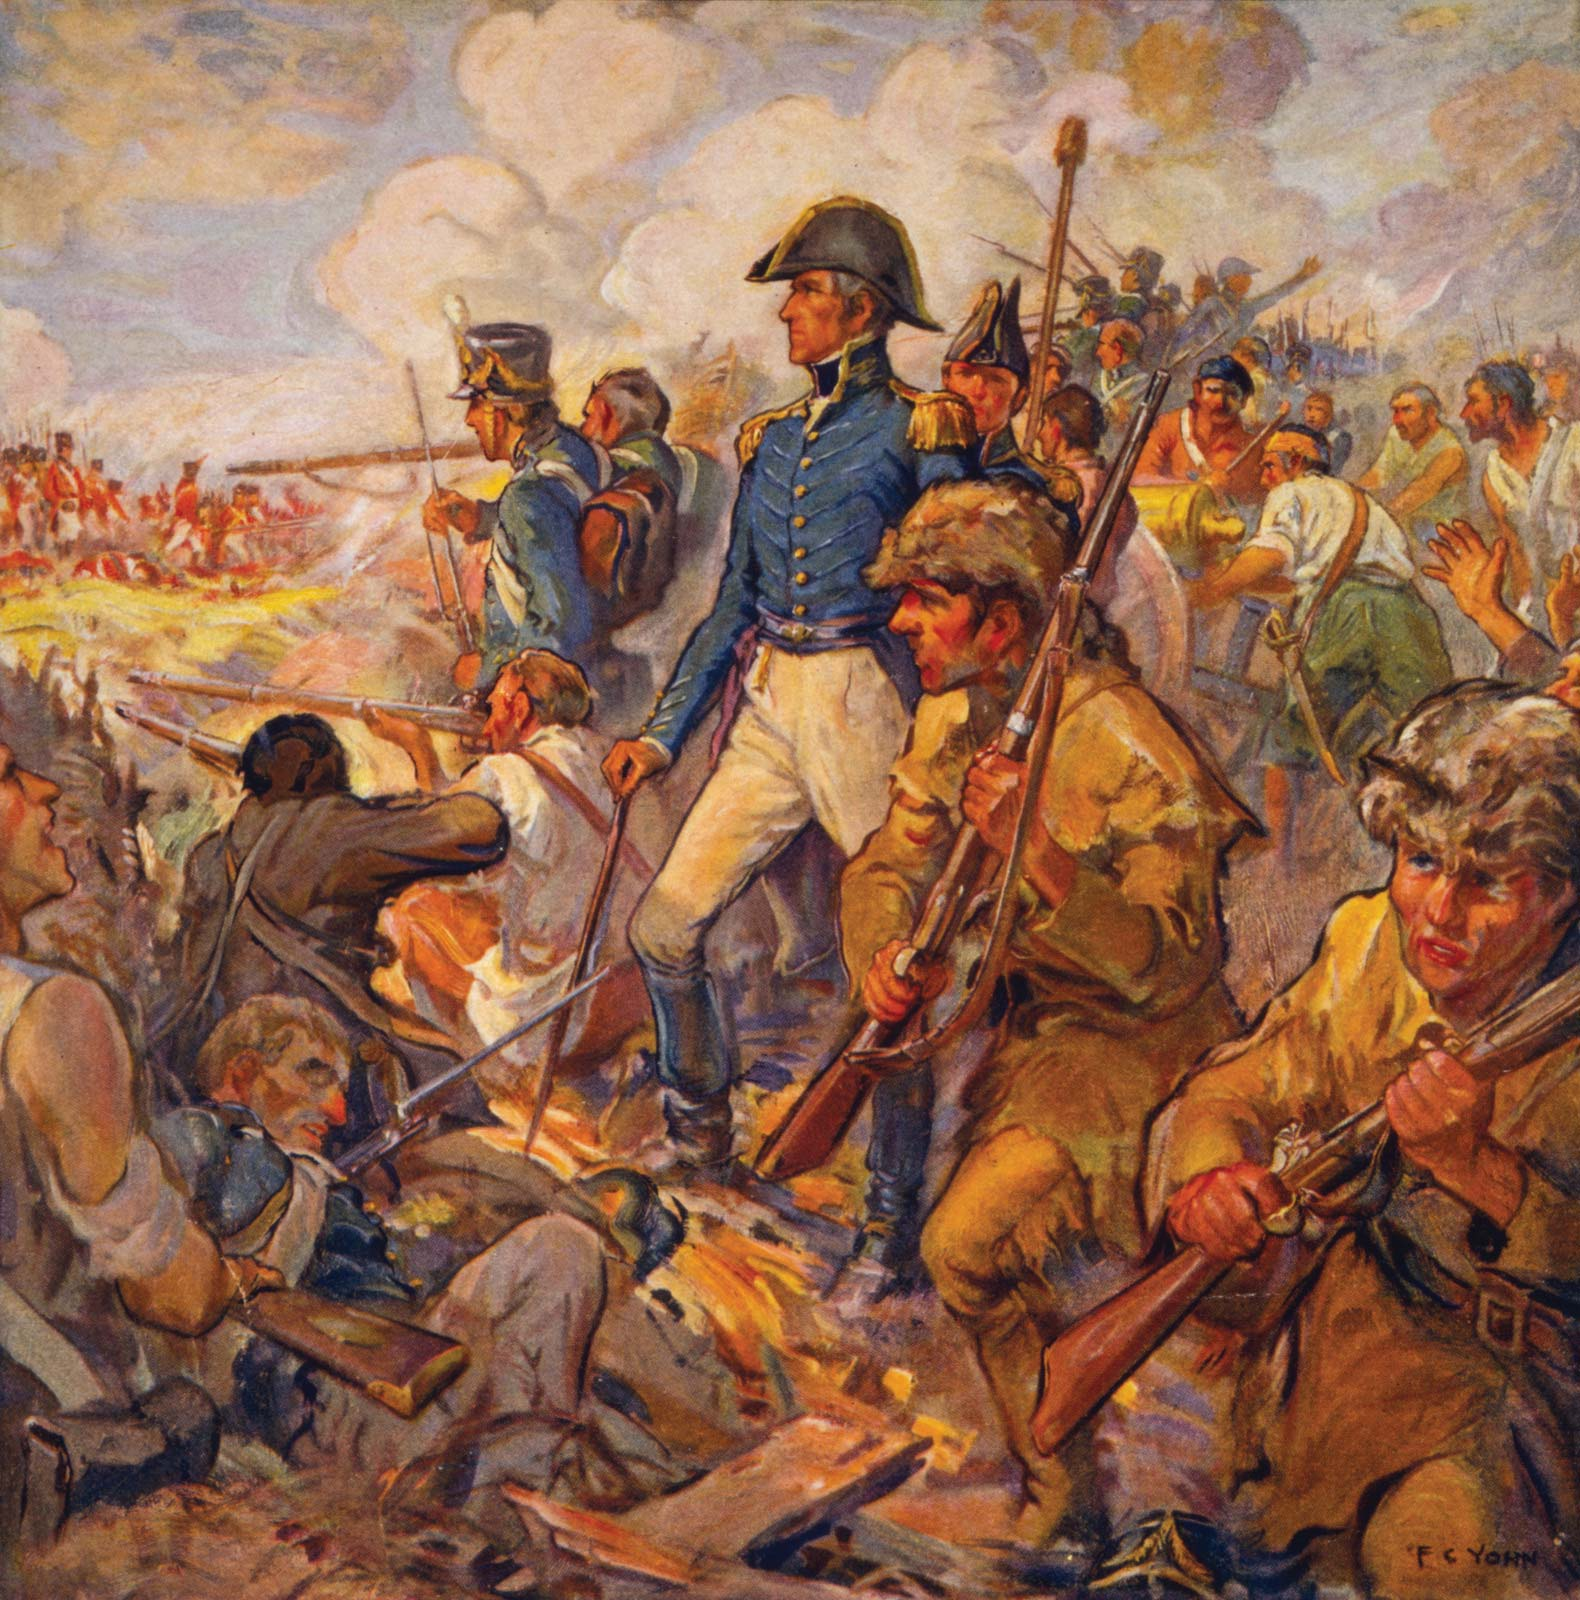 6 Myths About the Battle of New Orleans